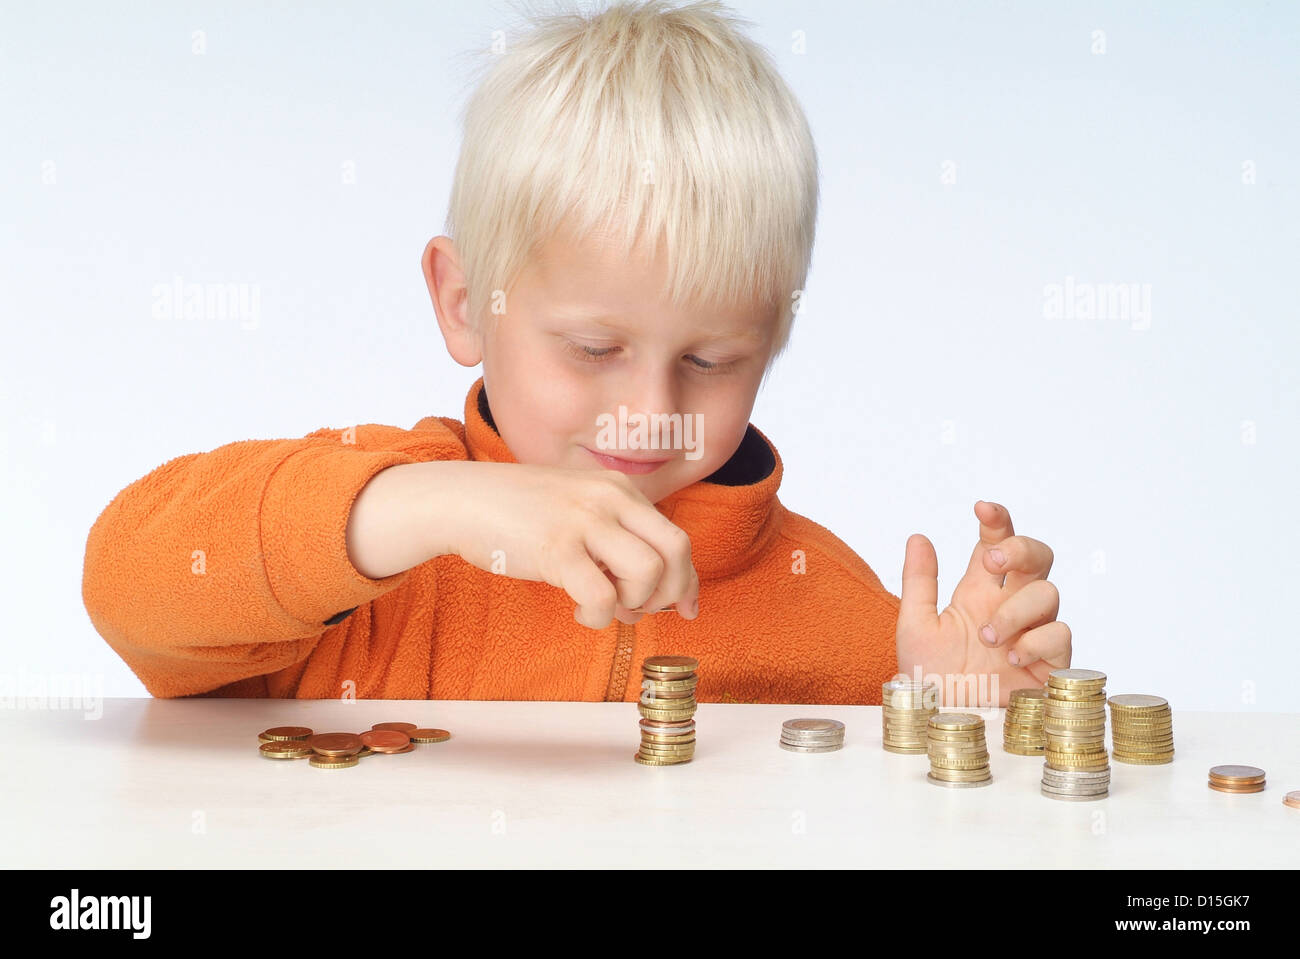 Hamburg, Germany, a boy plays with Geldmuenzen - Stock Image